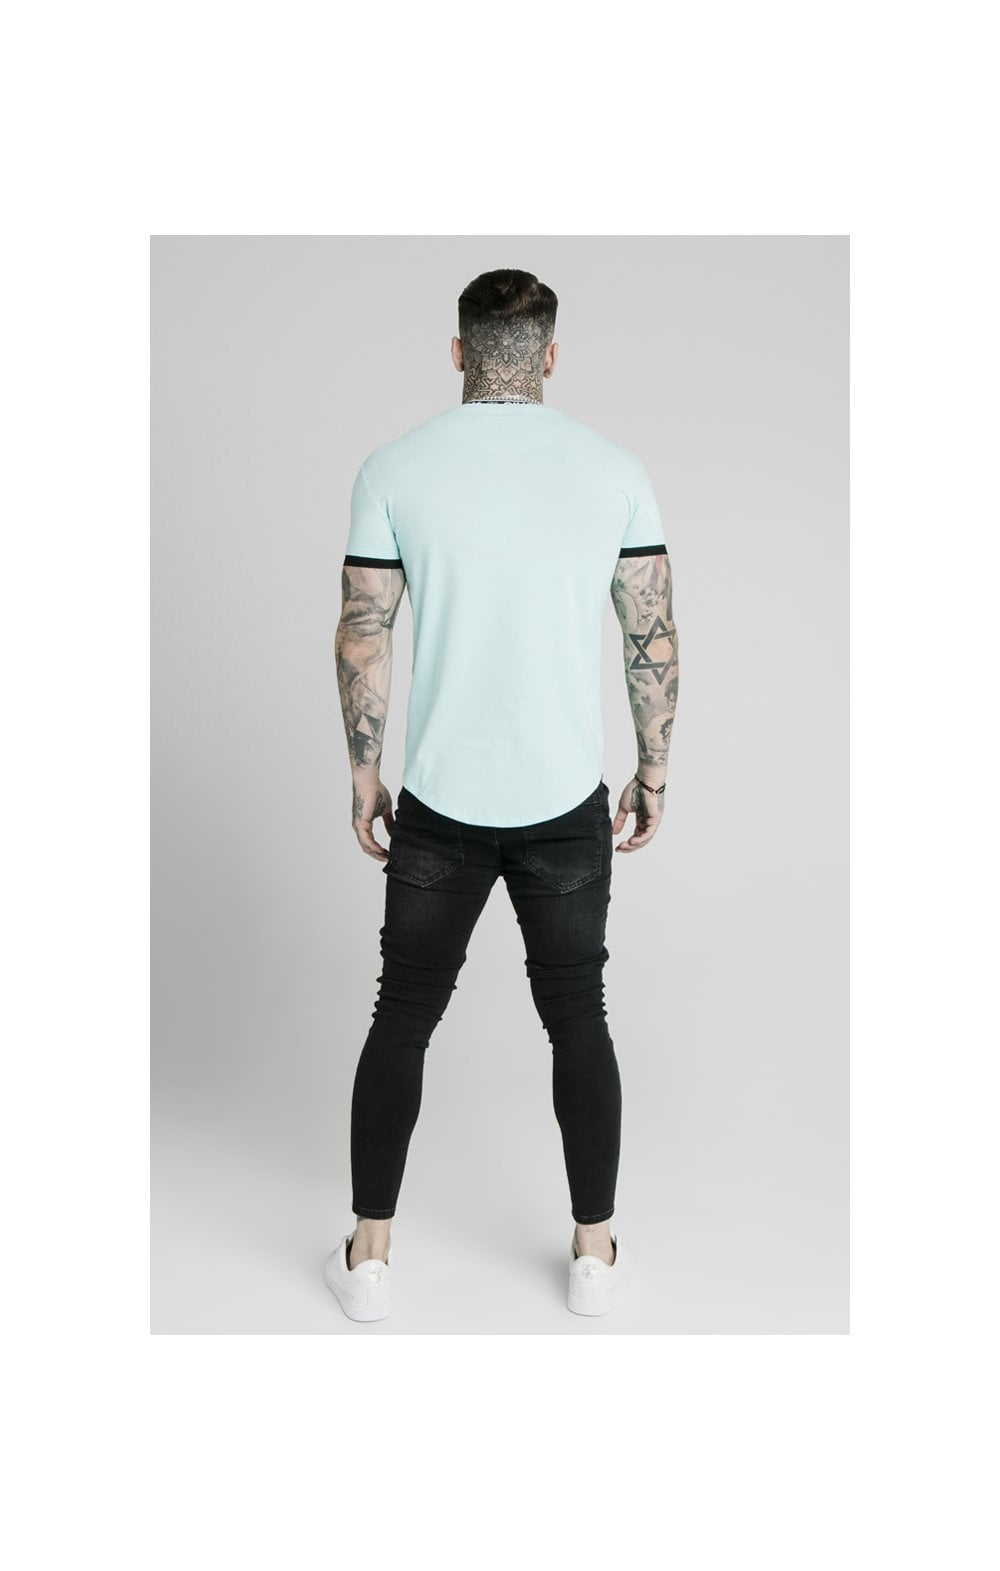 SikSilk S/S Inset Tape Collar Gym Tee - Teal (4)